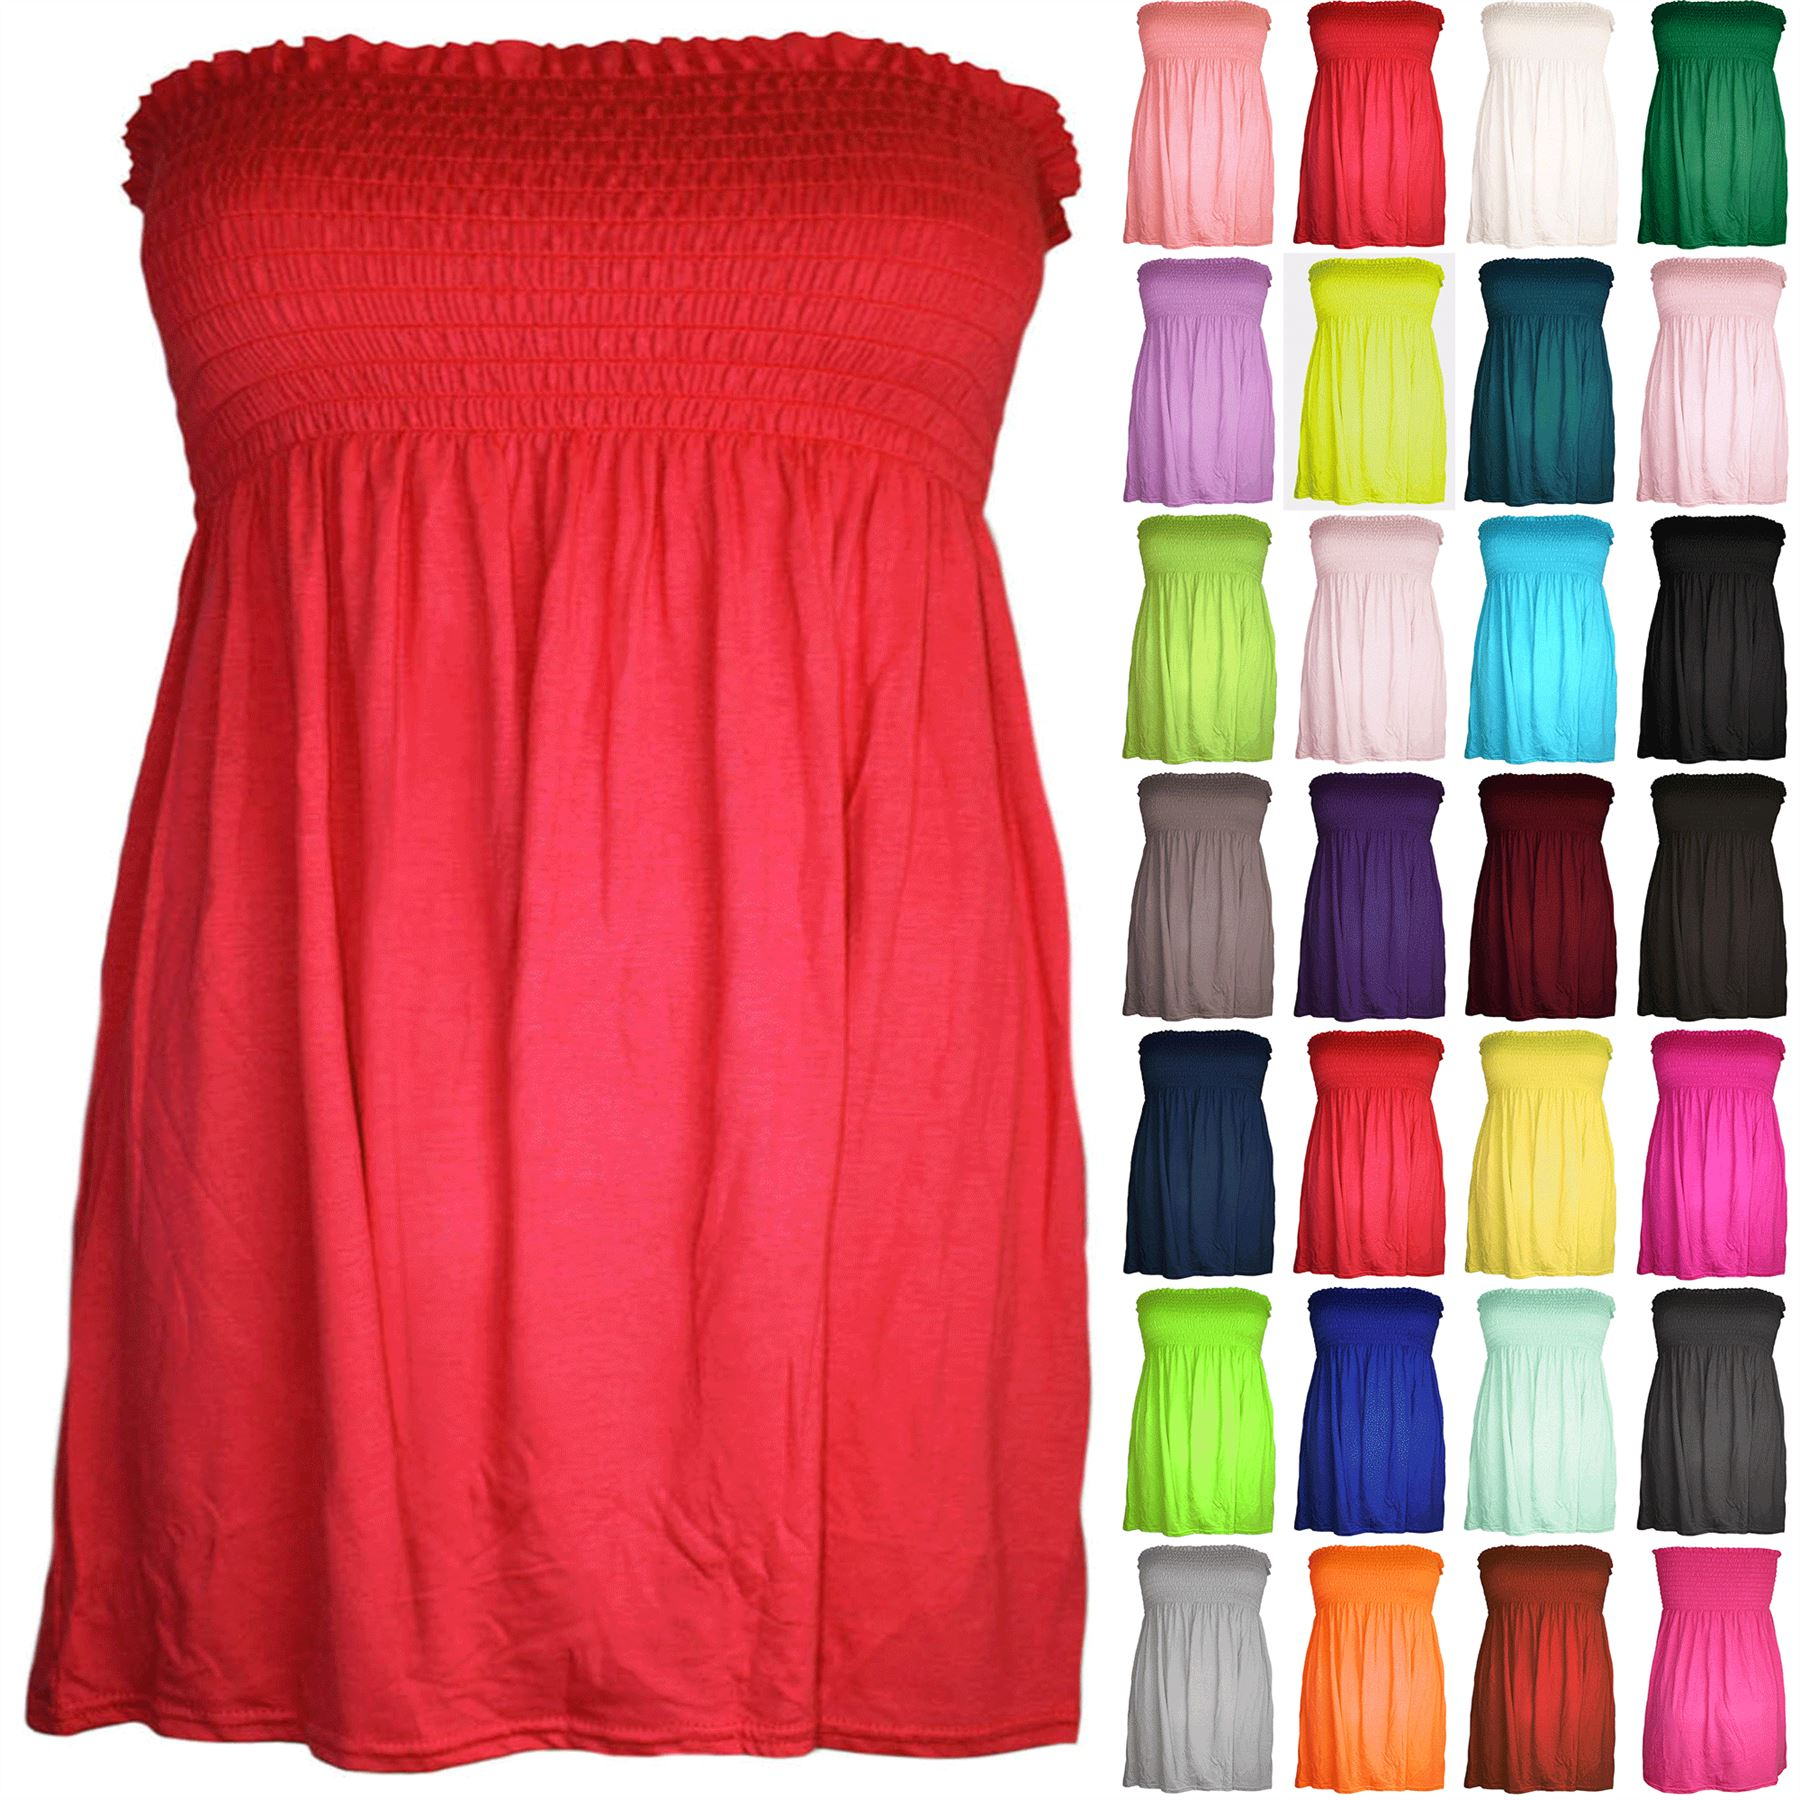 62430839d8 Plus Size Womens Ruched Jersey Ladies Sheering Flared Swing Bandeau ...